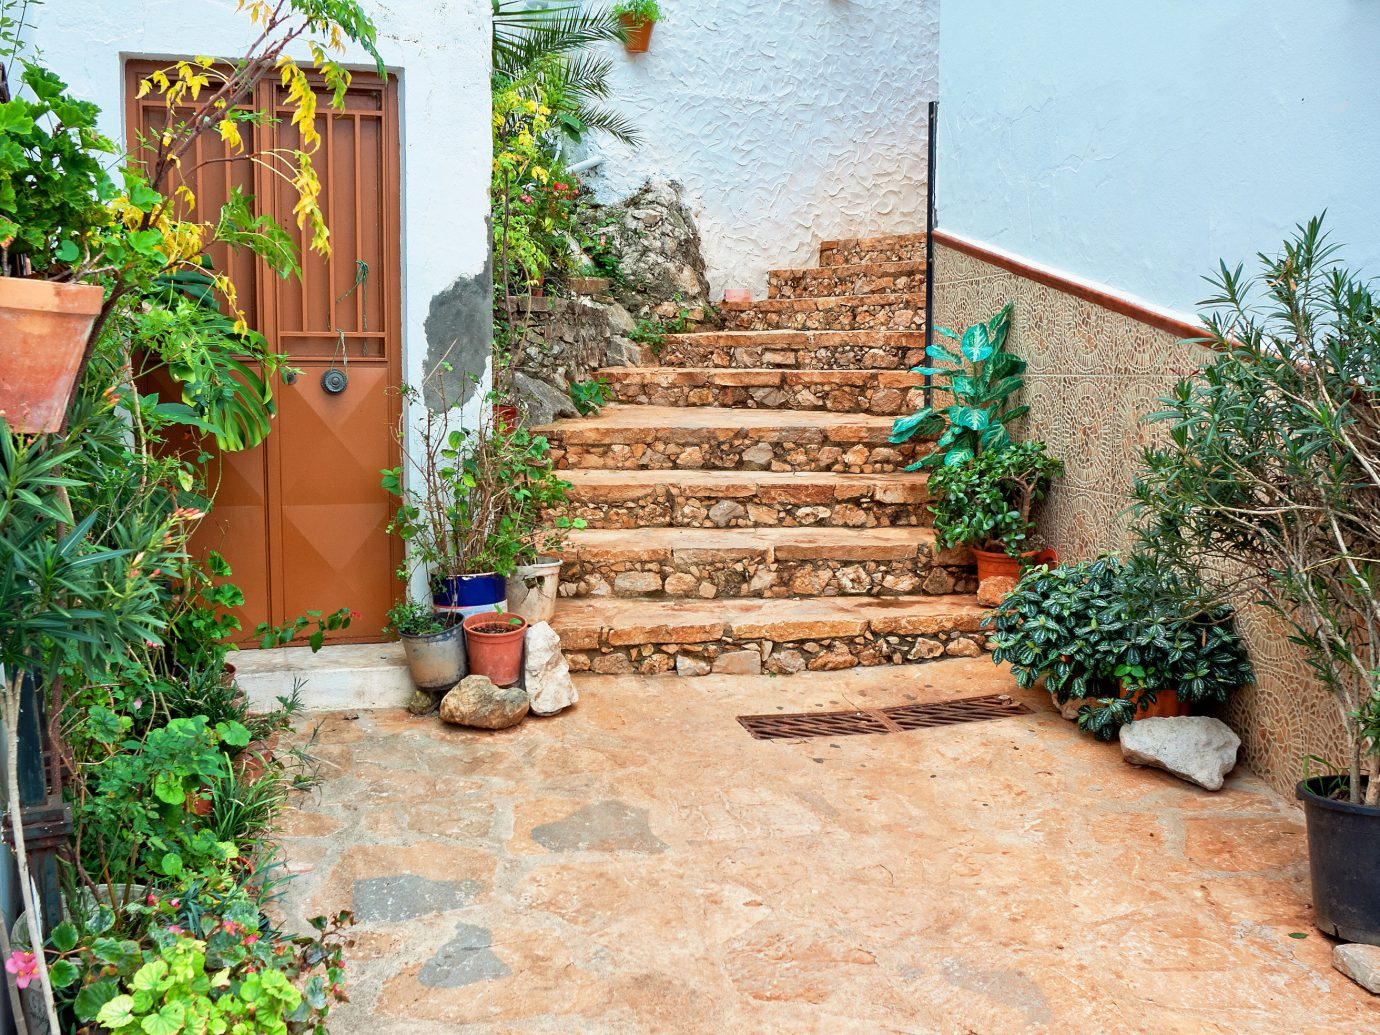 europe Spain Trip Ideas property yard Courtyard backyard walkway Garden wall plant home real estate outdoor structure landscaping house wood Patio flower estate facade tree grass